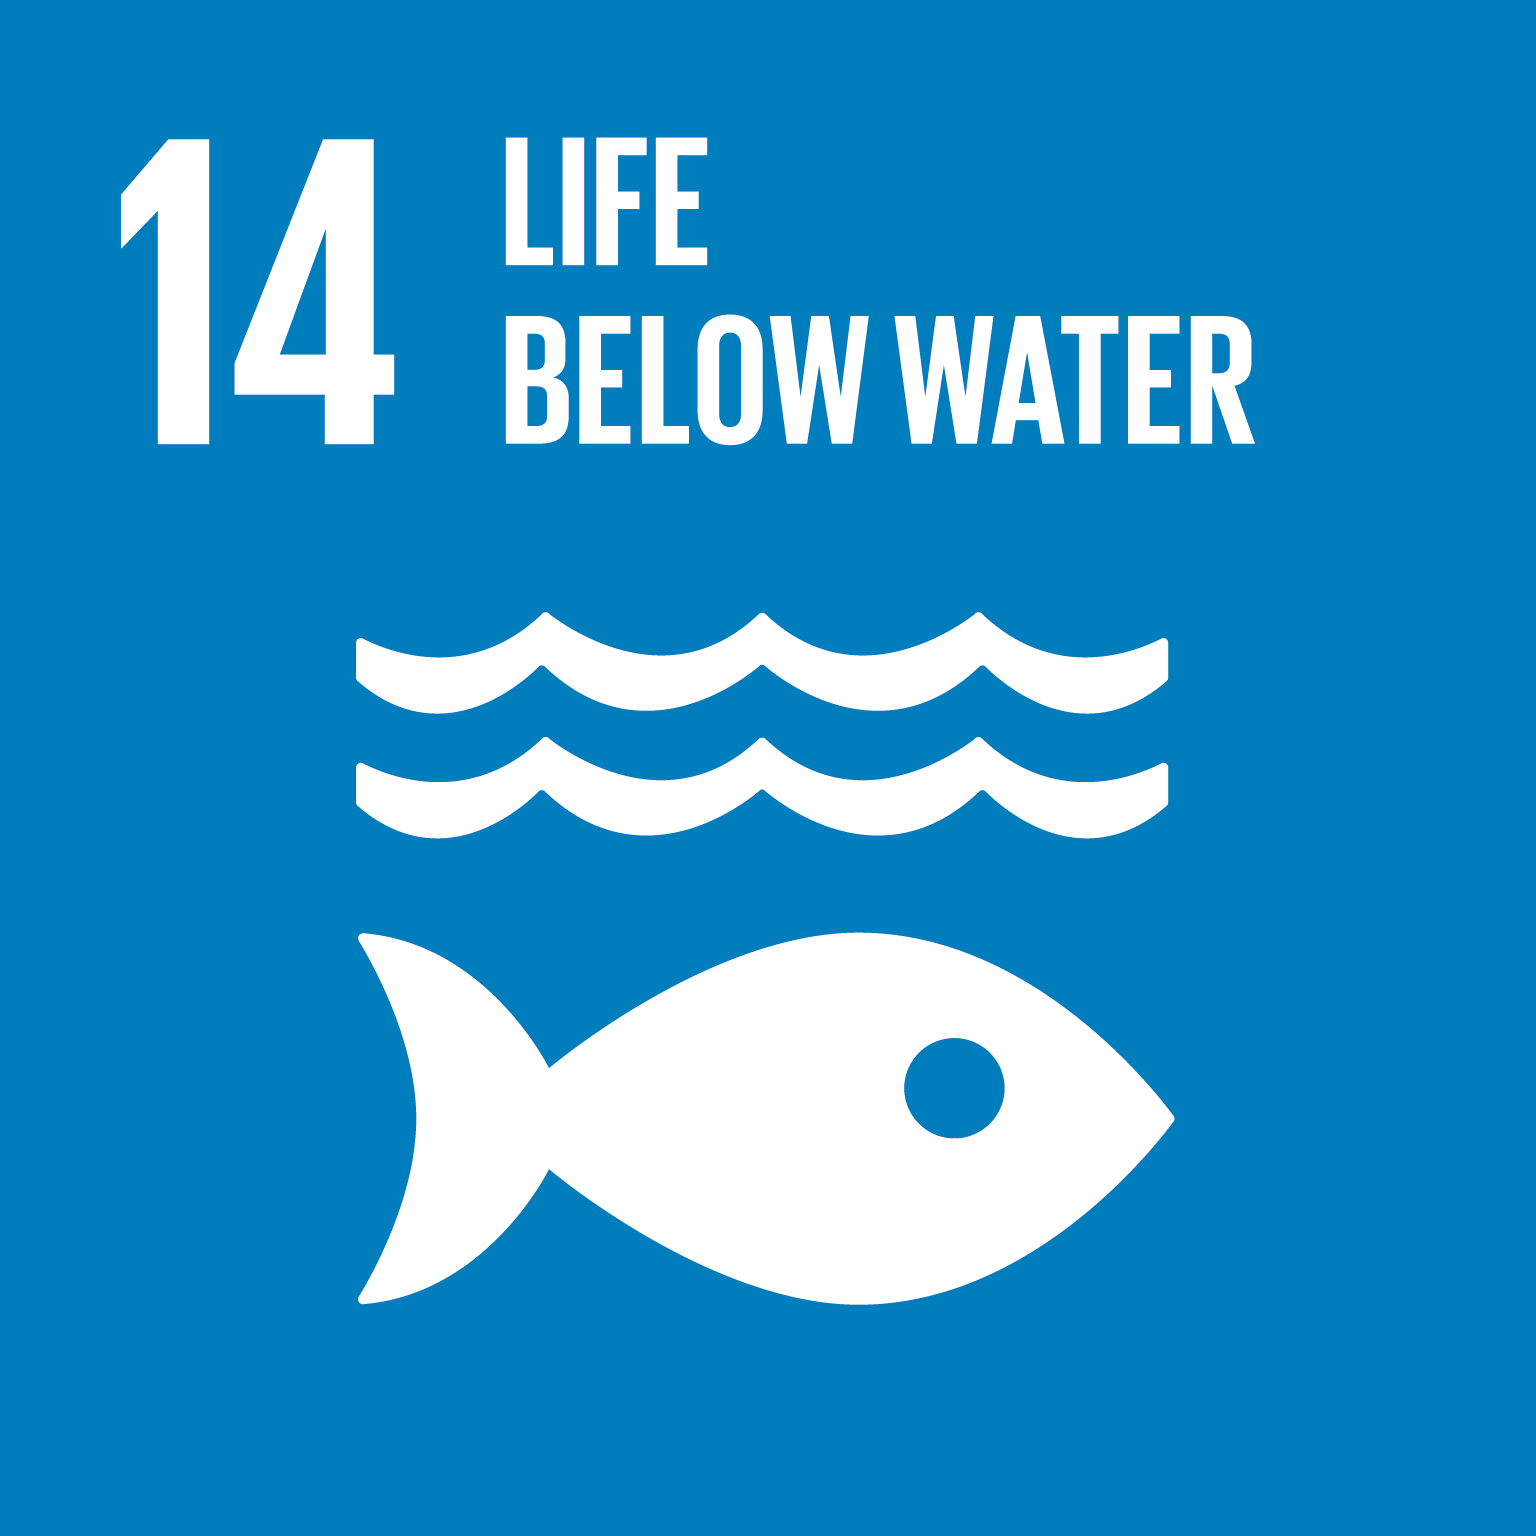 Afbeeldingsresultaat voor sustainable development goals 14